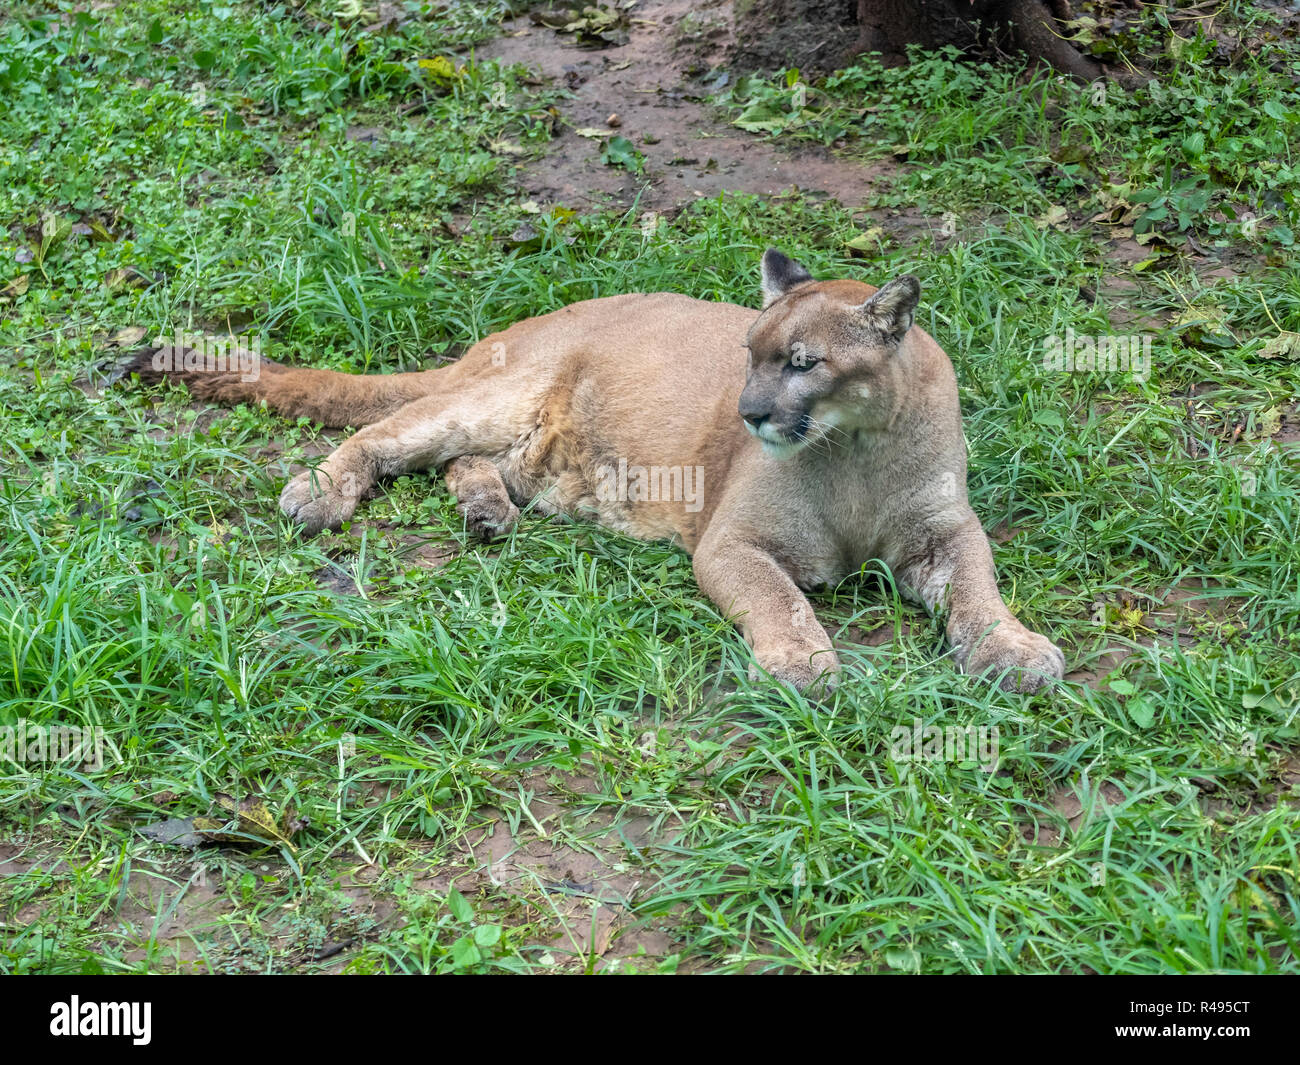 Puma Sitting on Green Muddy Grass Looking Left - Stock Image